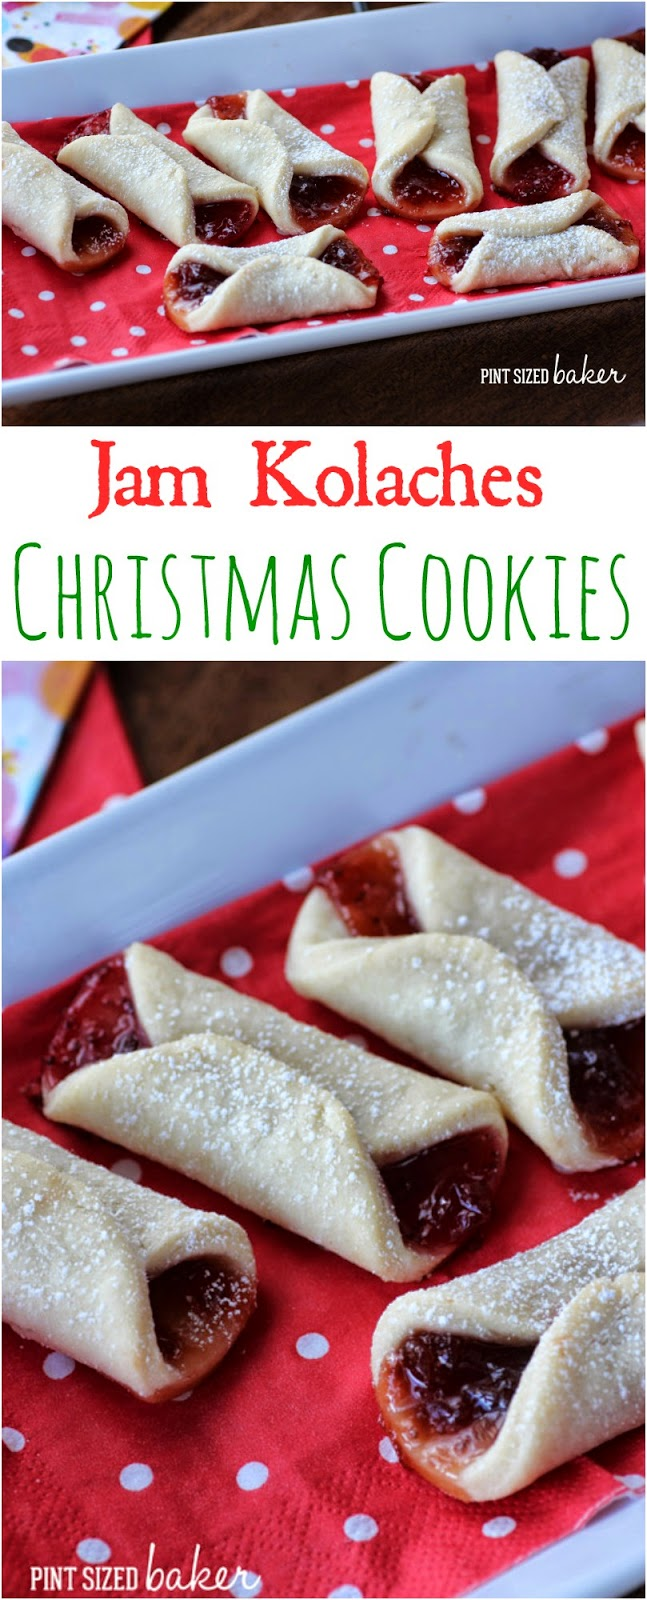 I made some easy and delicious Jam Kolaches for Christmas! They're great on a cookie platter!